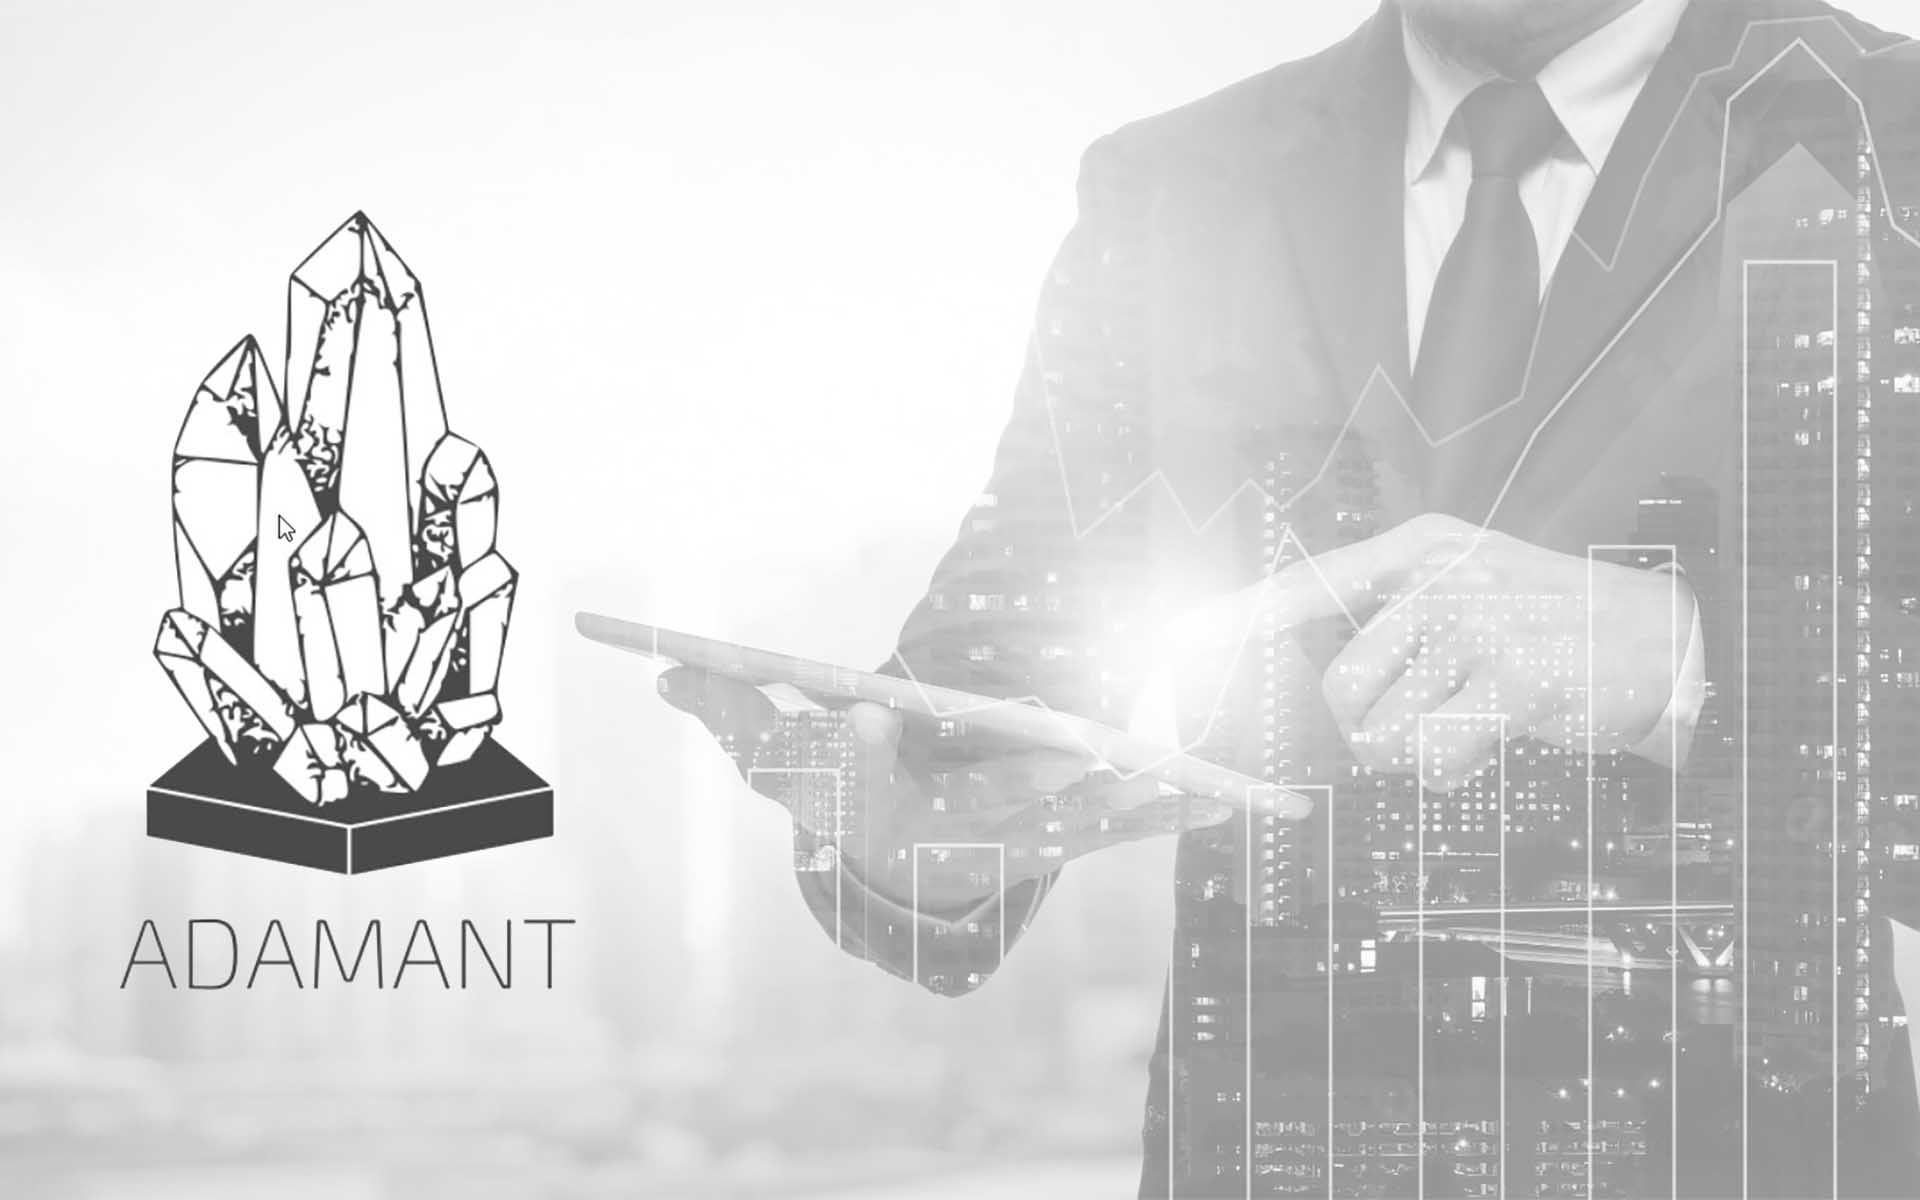 ADAMANT Completes ICO Pre-Sale & Meets Soft-Cap – ICO Live – The Most Secure and Anonymous Messenger - Encrypted Within The Blockchain